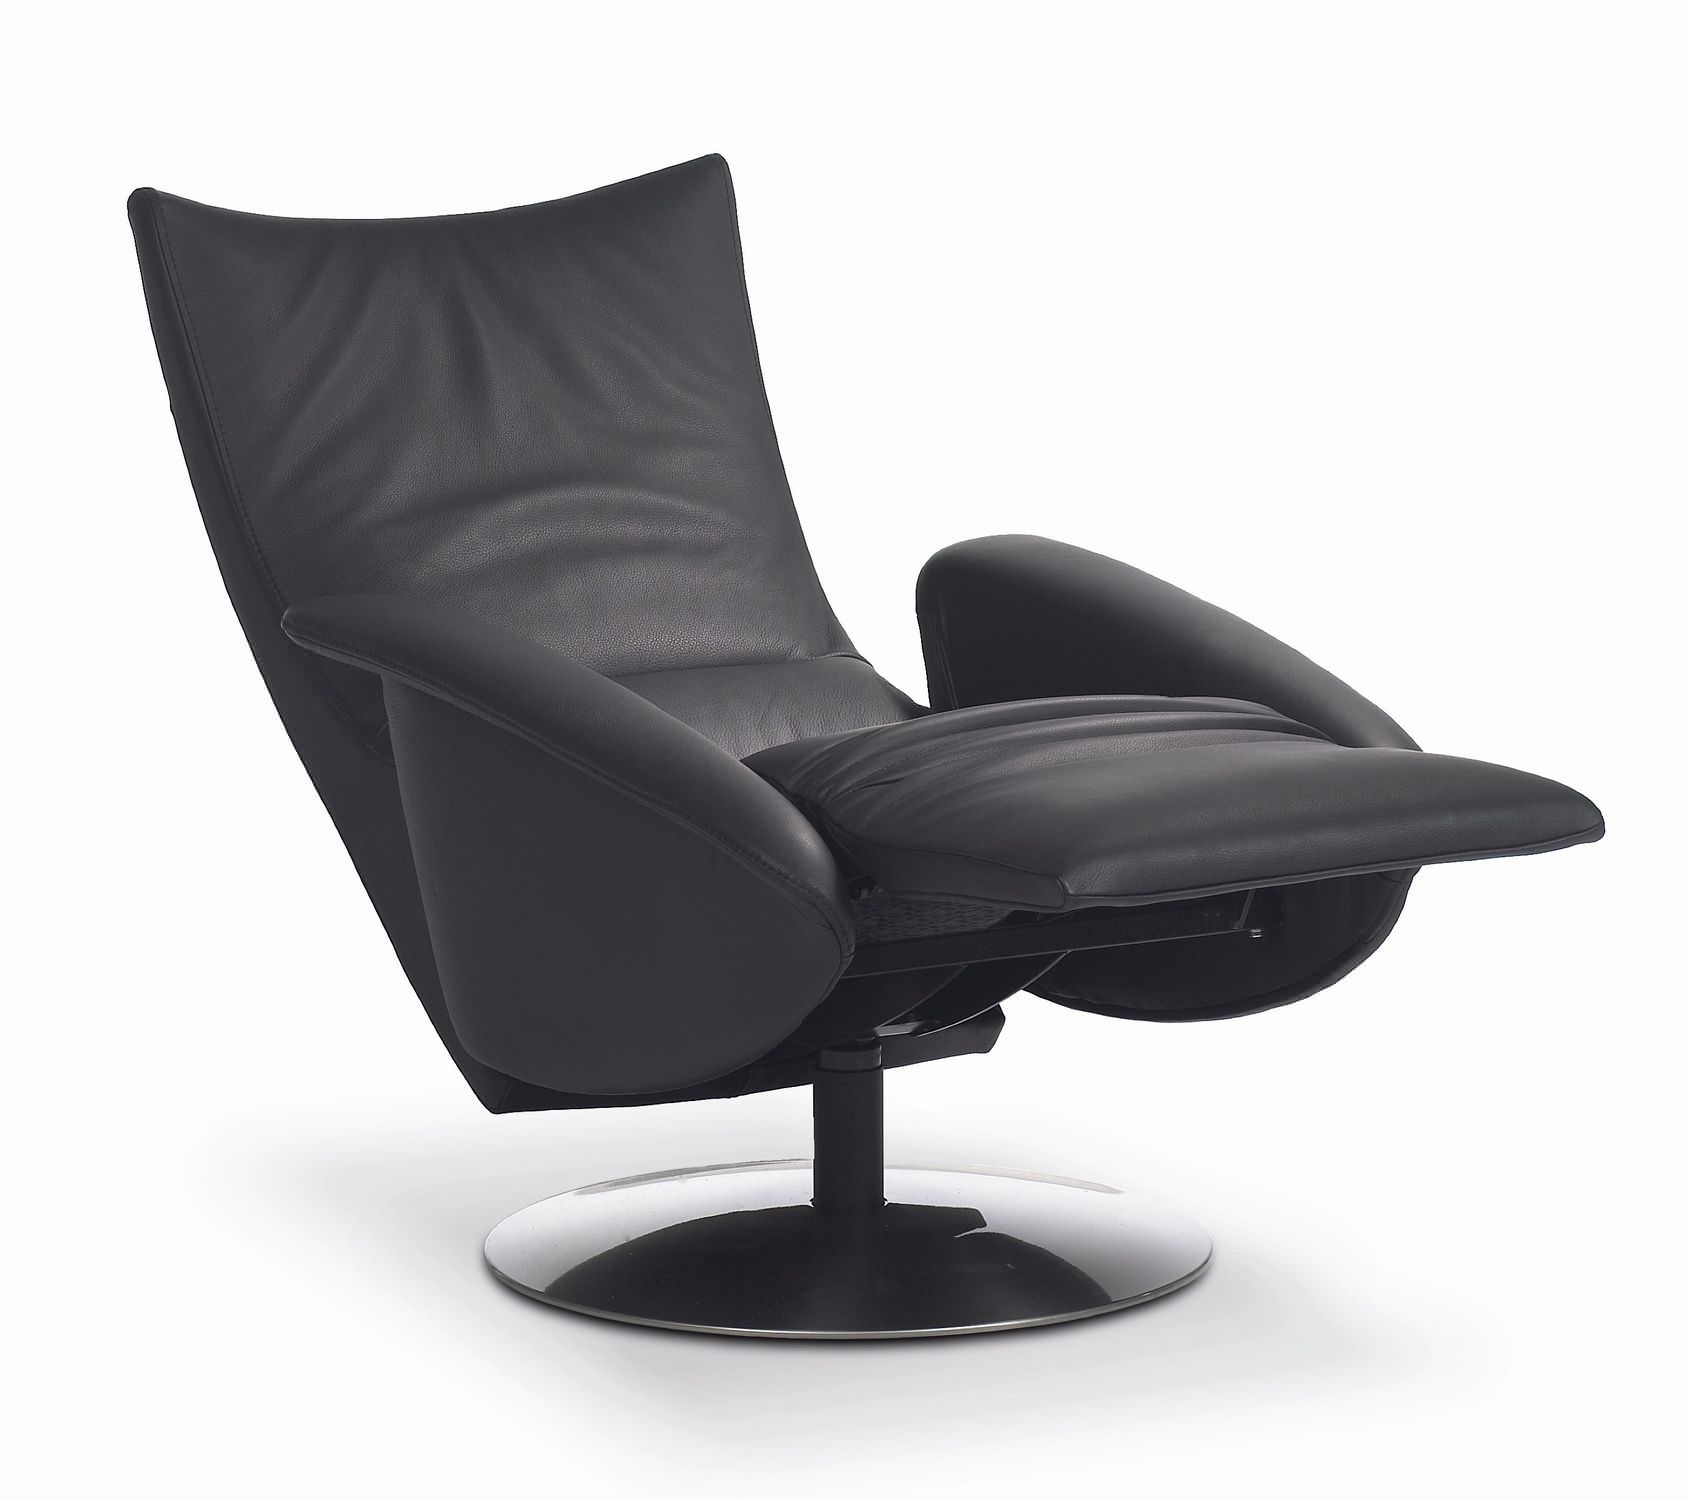 Contemporary Leather Recliner Chairs A Dark Colors With Modern And